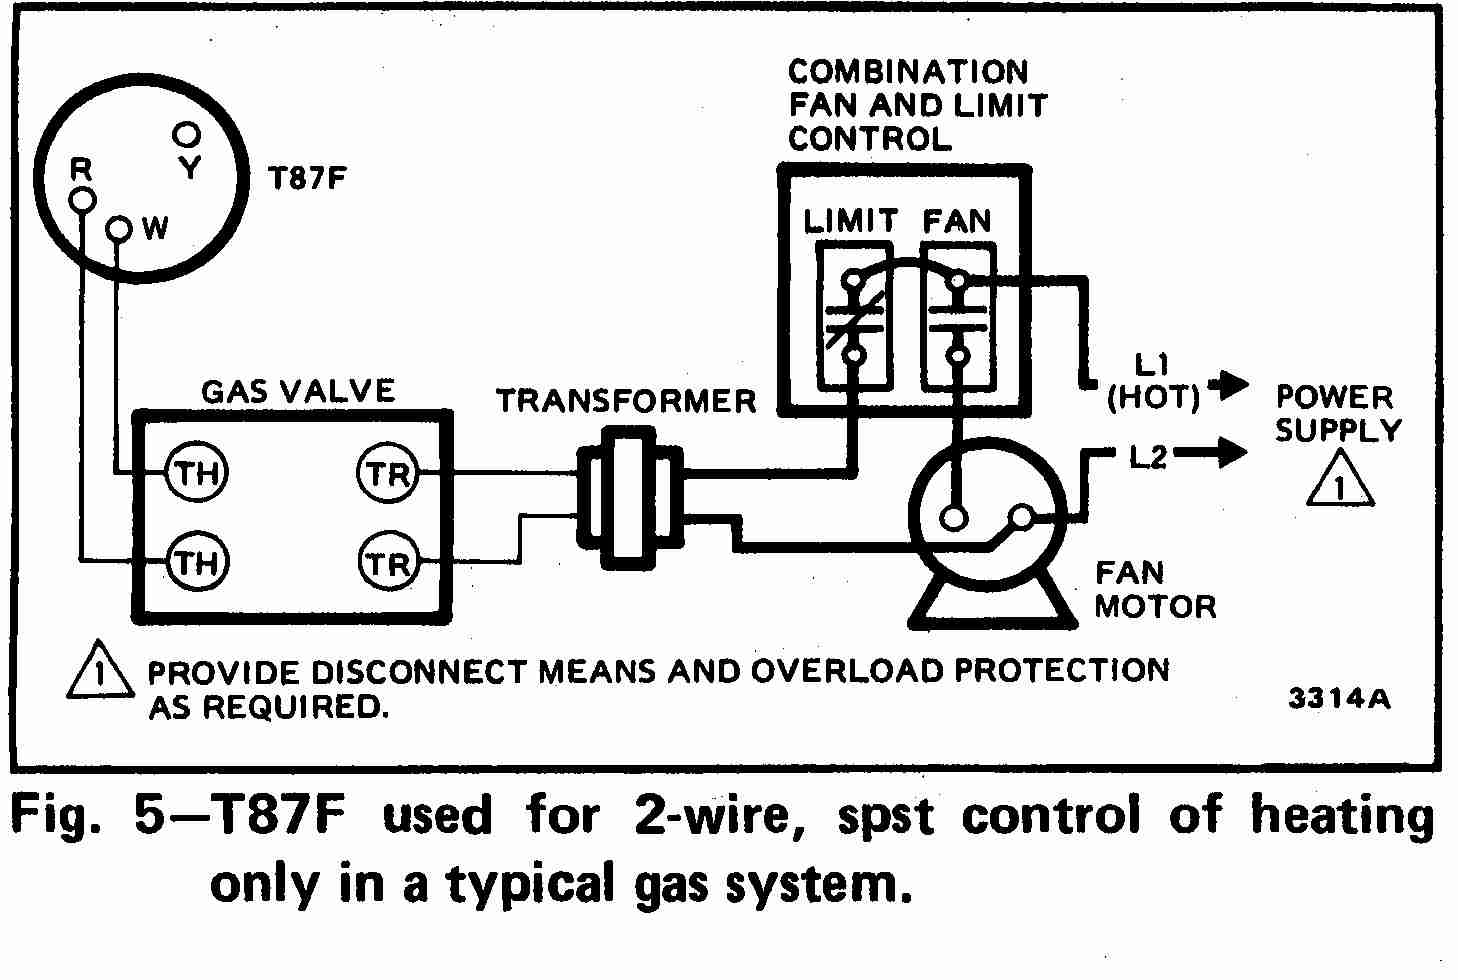 Coleman Furnace Thermostat Wiring Diagram together with Thermostat Diagrams as well Wiring Honeywell Mercury Thermostat Free Download Diagrams in addition Honeywell 4 And 5 Wire Thermostat Wiring Instructions as well Honeywell Mercury Thermostat Wiring Diagram. on white rodgers mercury thermostat